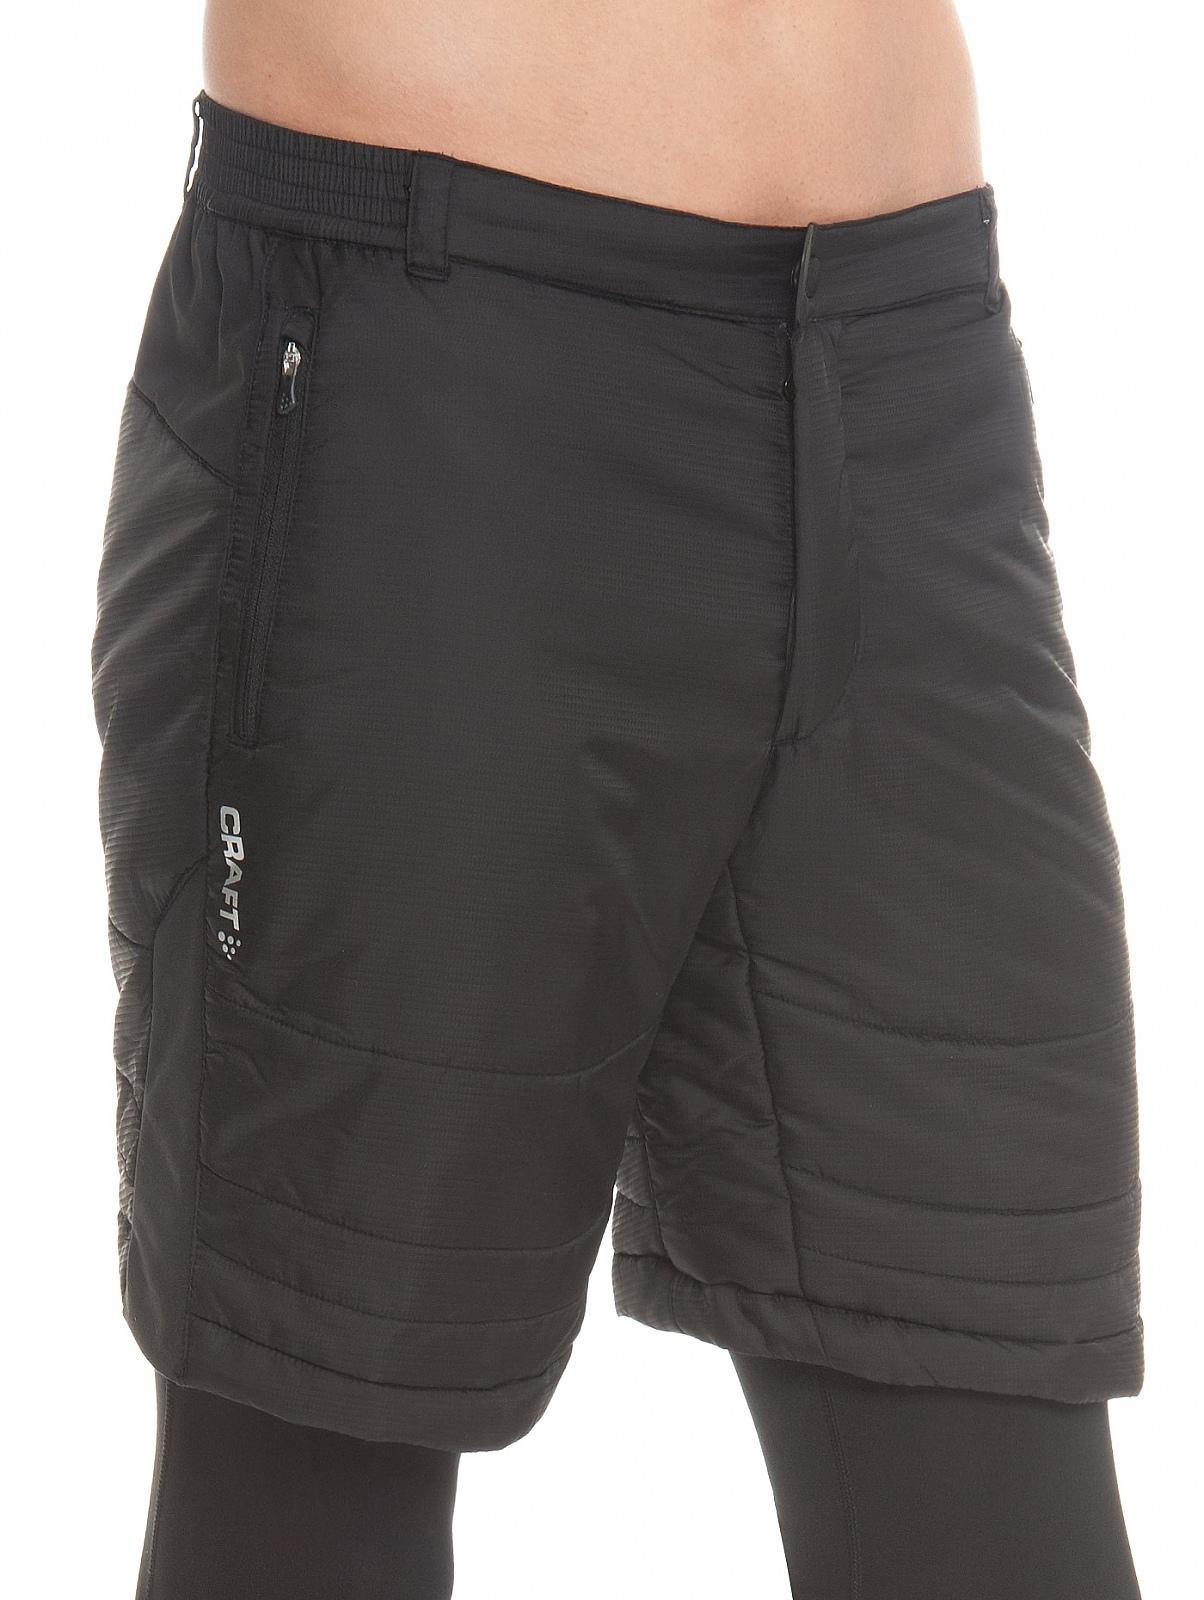 Craft Insulation Shorts